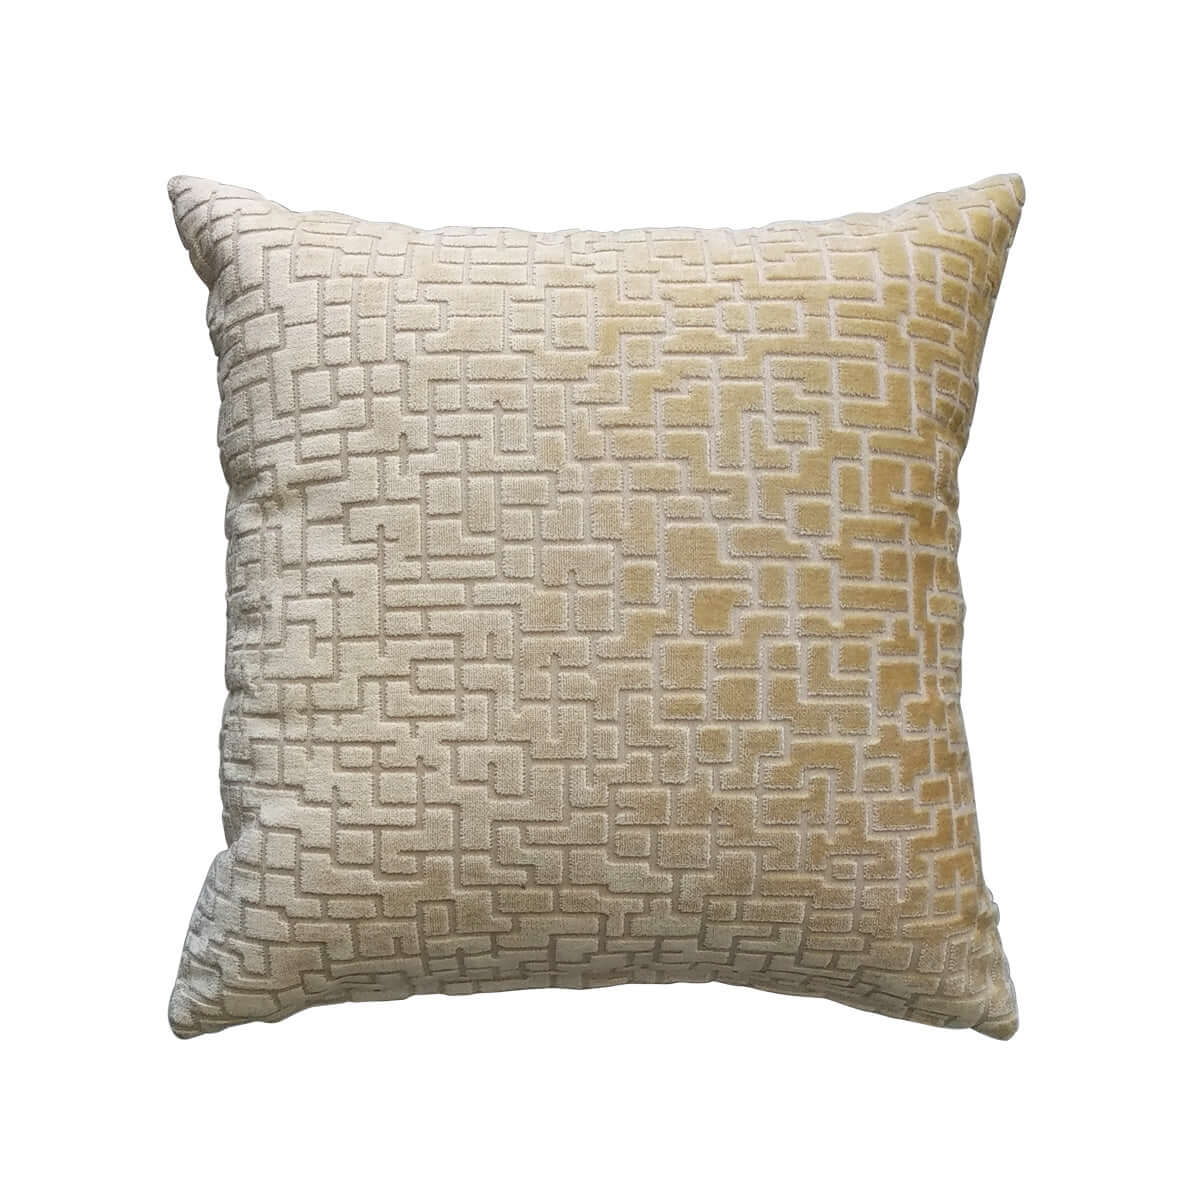 Tara Sunshine Cushion Cover